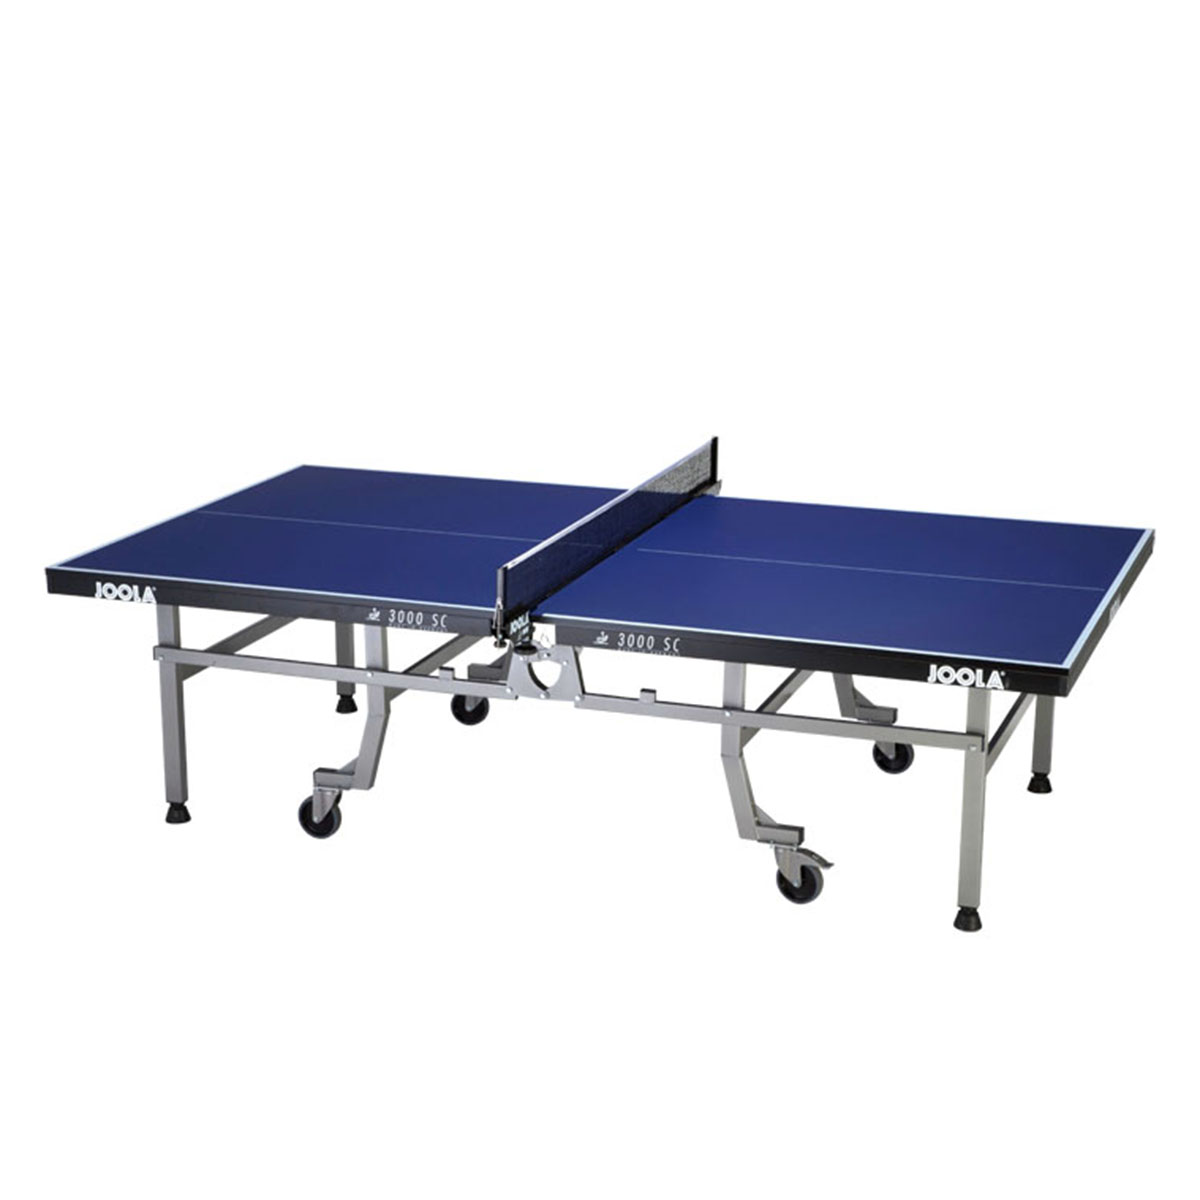 Previous  sc 1 st  GameTablesOnline.com & Joola 3000SC Olympic Ping Pong Table - GameTablesOnline.com